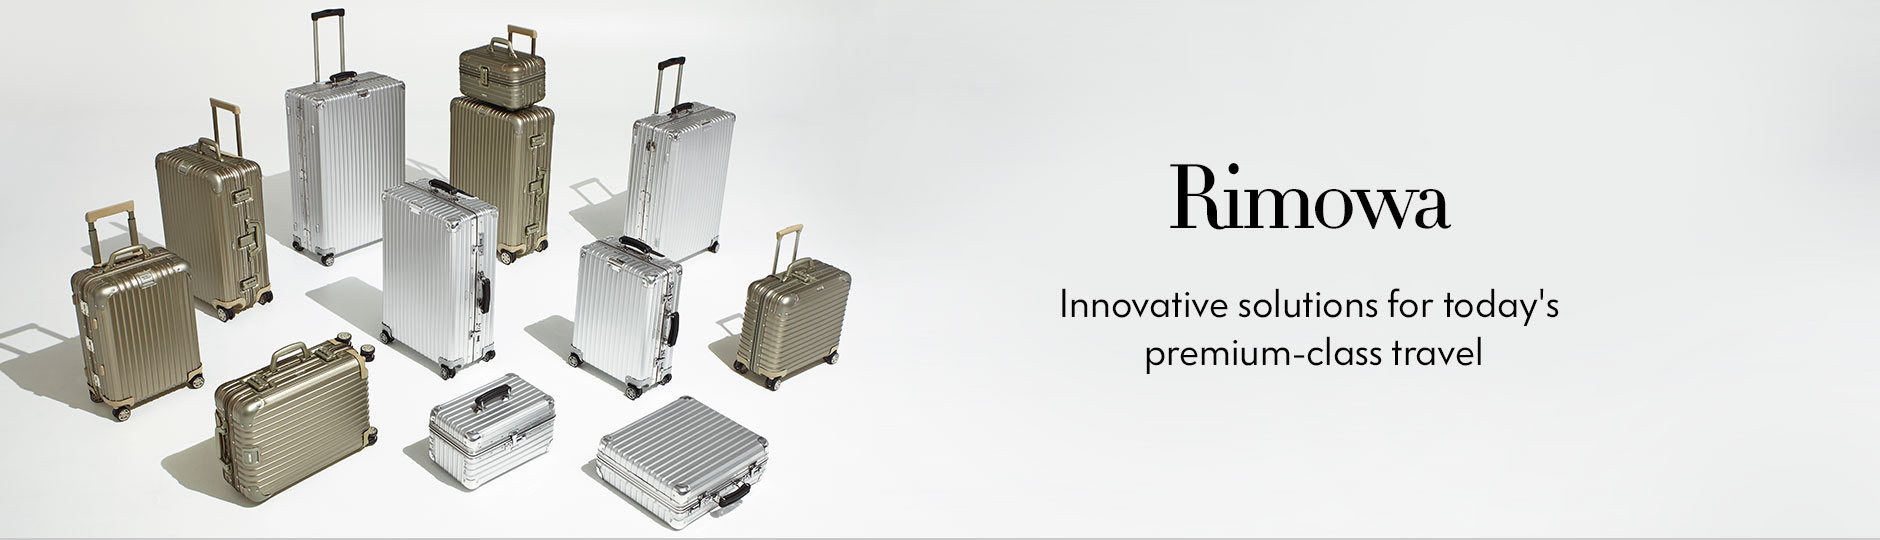 Rimowa - Innovative solutions for today's premium-class travel